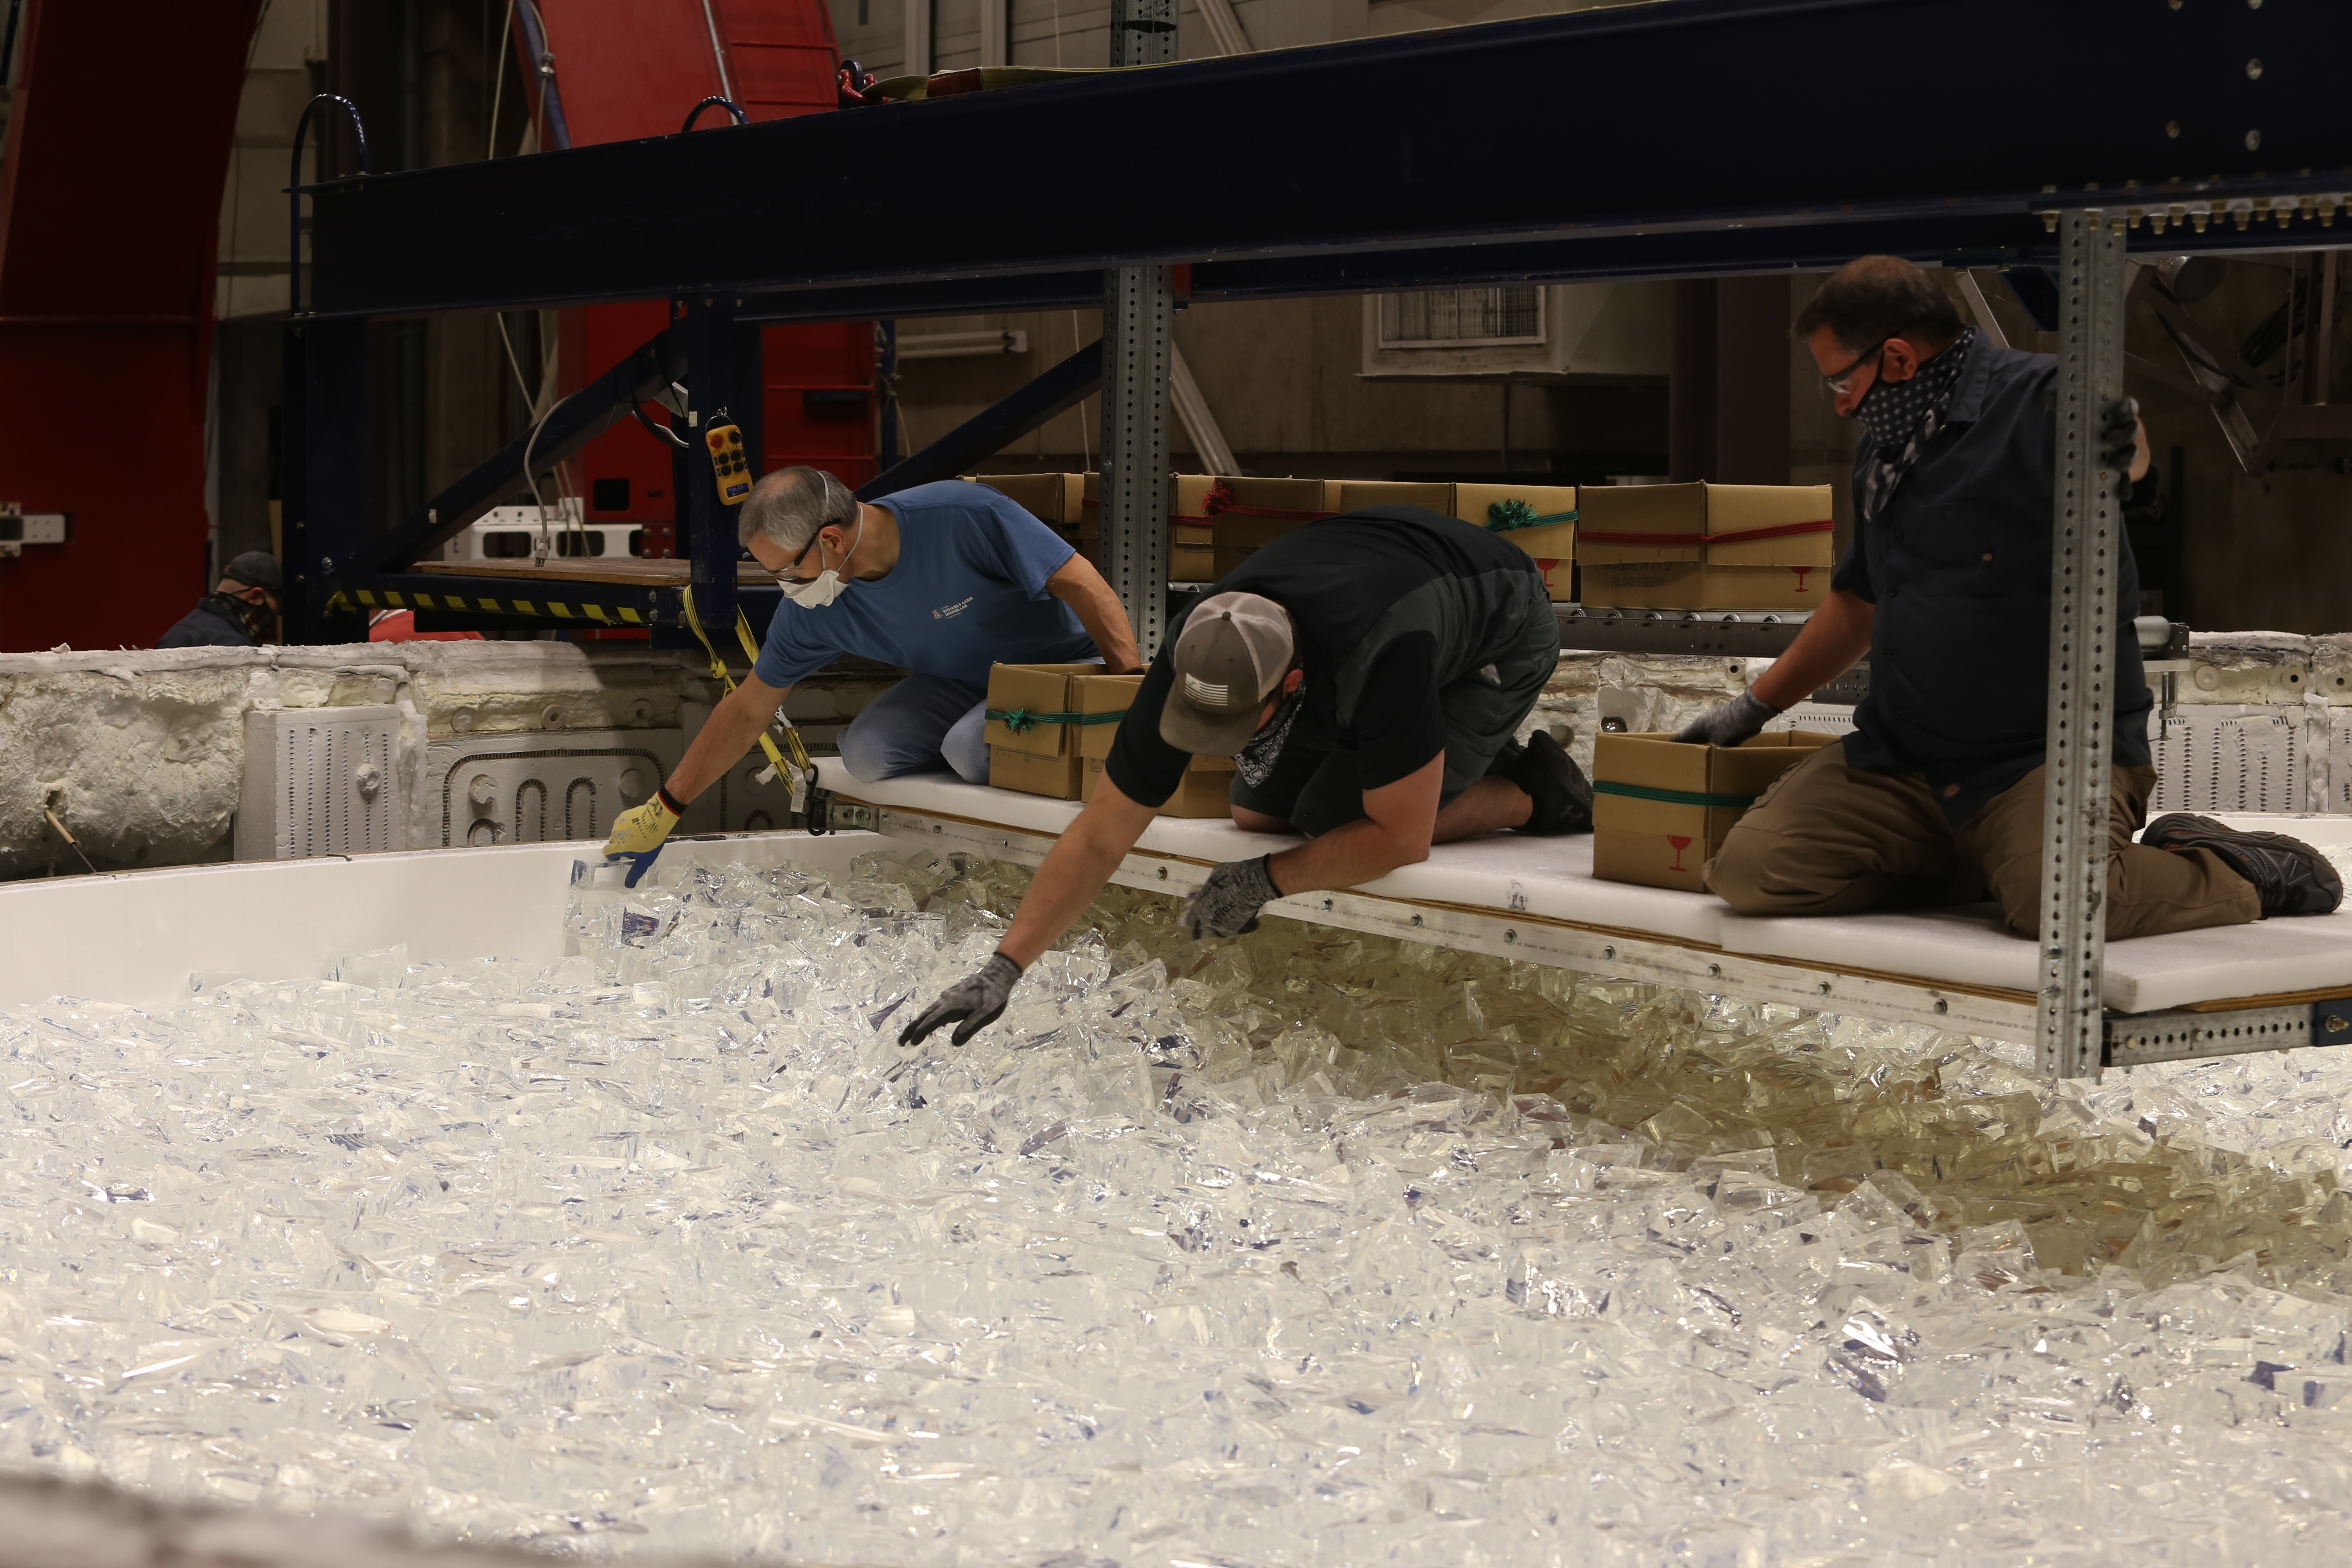 Engineers at the Richard F. Caris Mirror Lab hand-load chunks of glass into the mold. Almost 20 tons of glass are added this way before the lid will be closed and the furnace fired up to melt the glass.